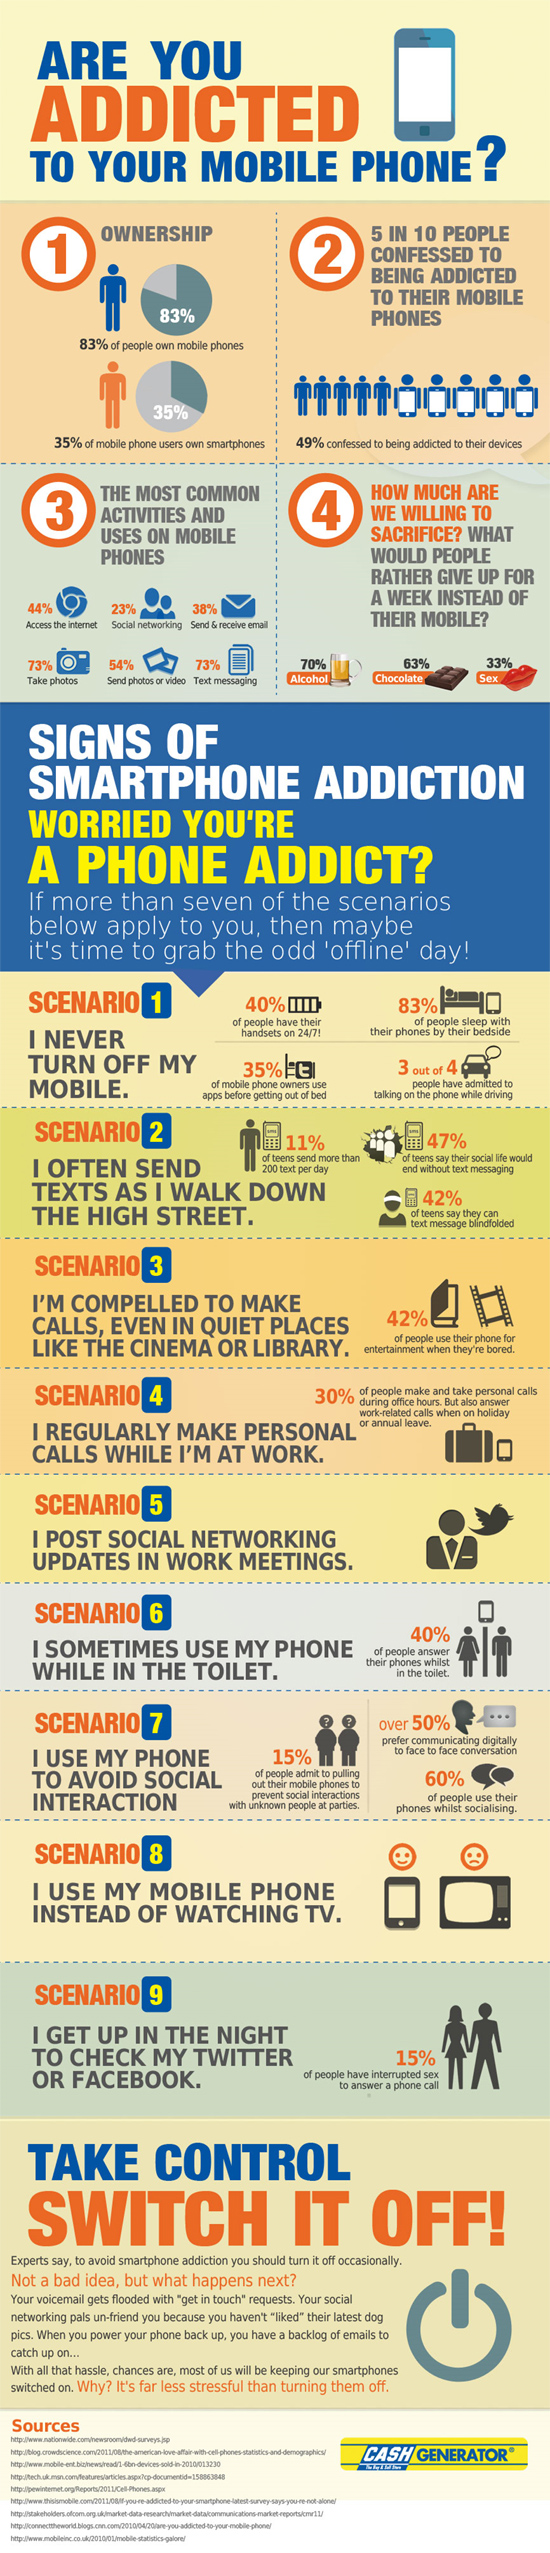 Infographic: Are You Addicted To Your Mobile Phone? 28